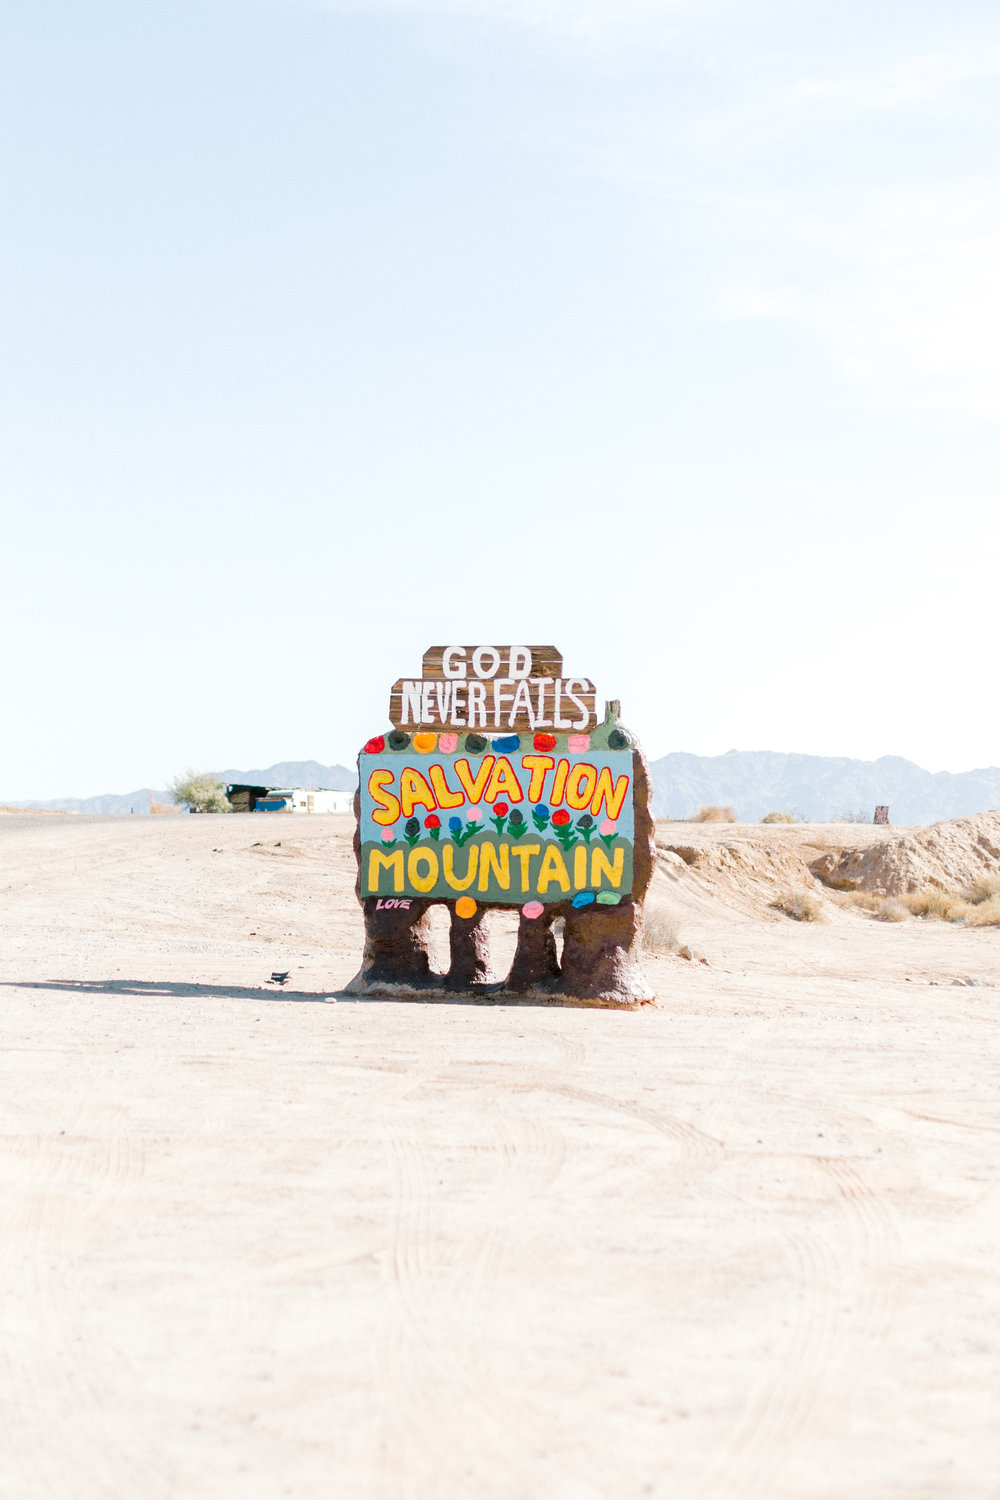 Jessica Sgubin Photography Atlanta Portrait photographer los angeles la salvation mountain greenhouse cactus garden moorten botanical garden cabazon dinosaurs santa monica joshua tree-1-5.jpg